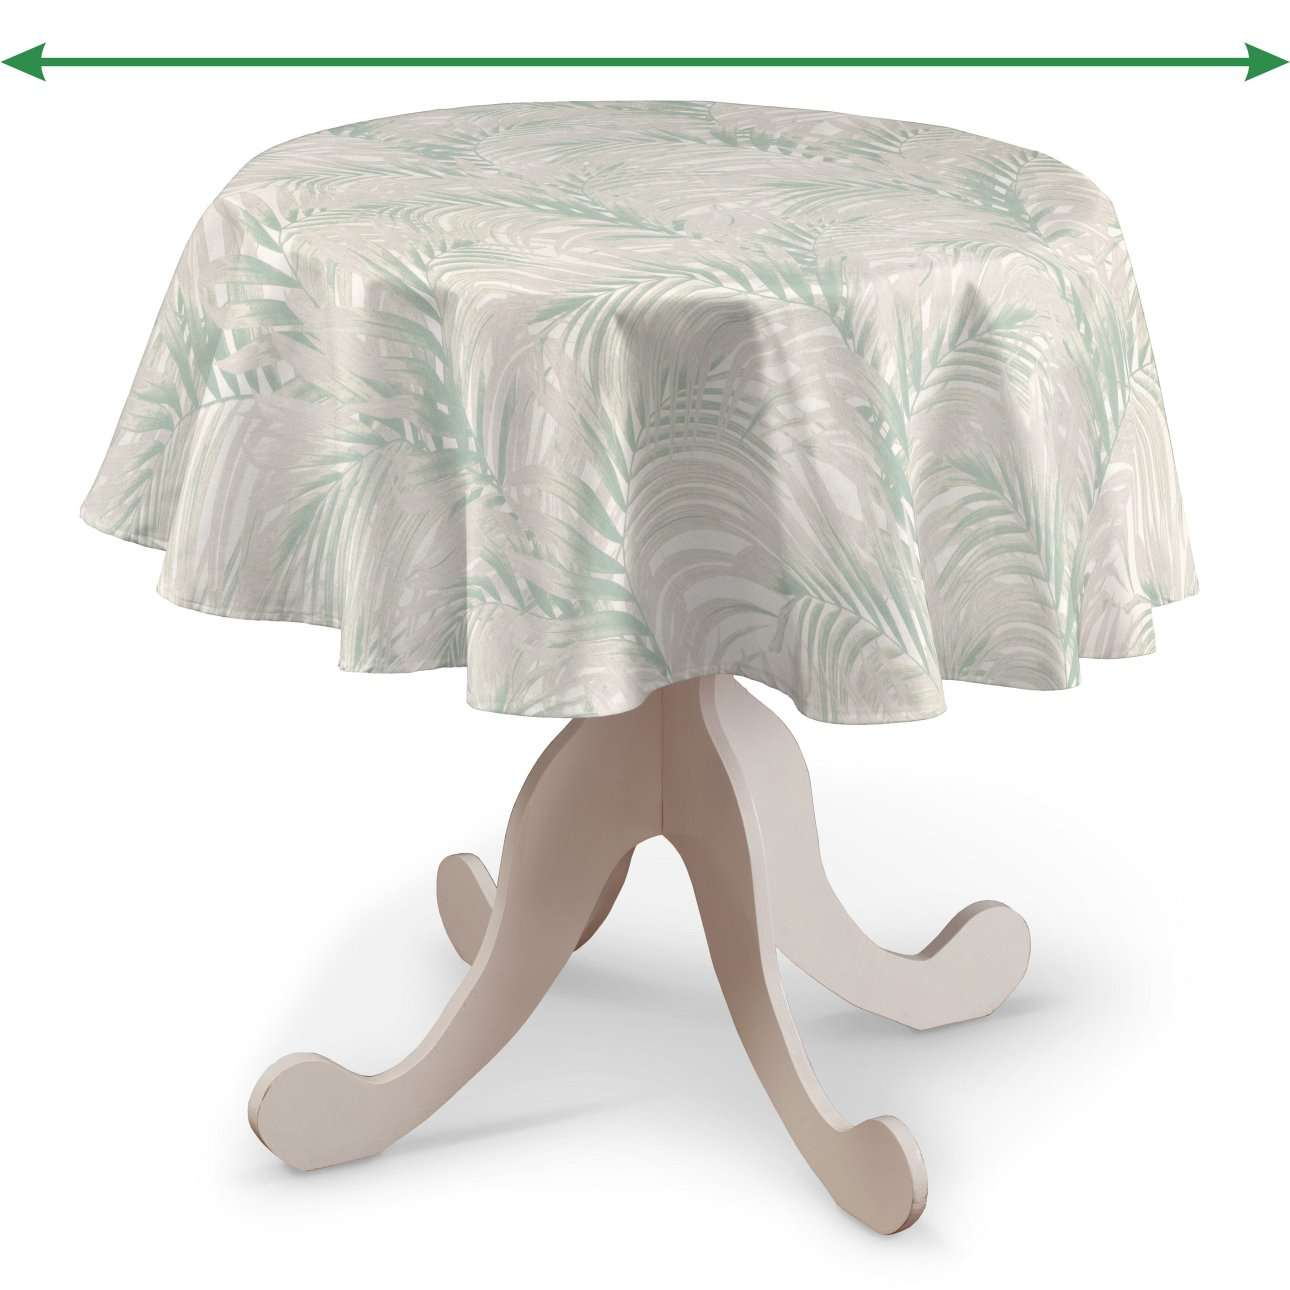 Round tablecloth in collection Gardenia, fabric: 142-15